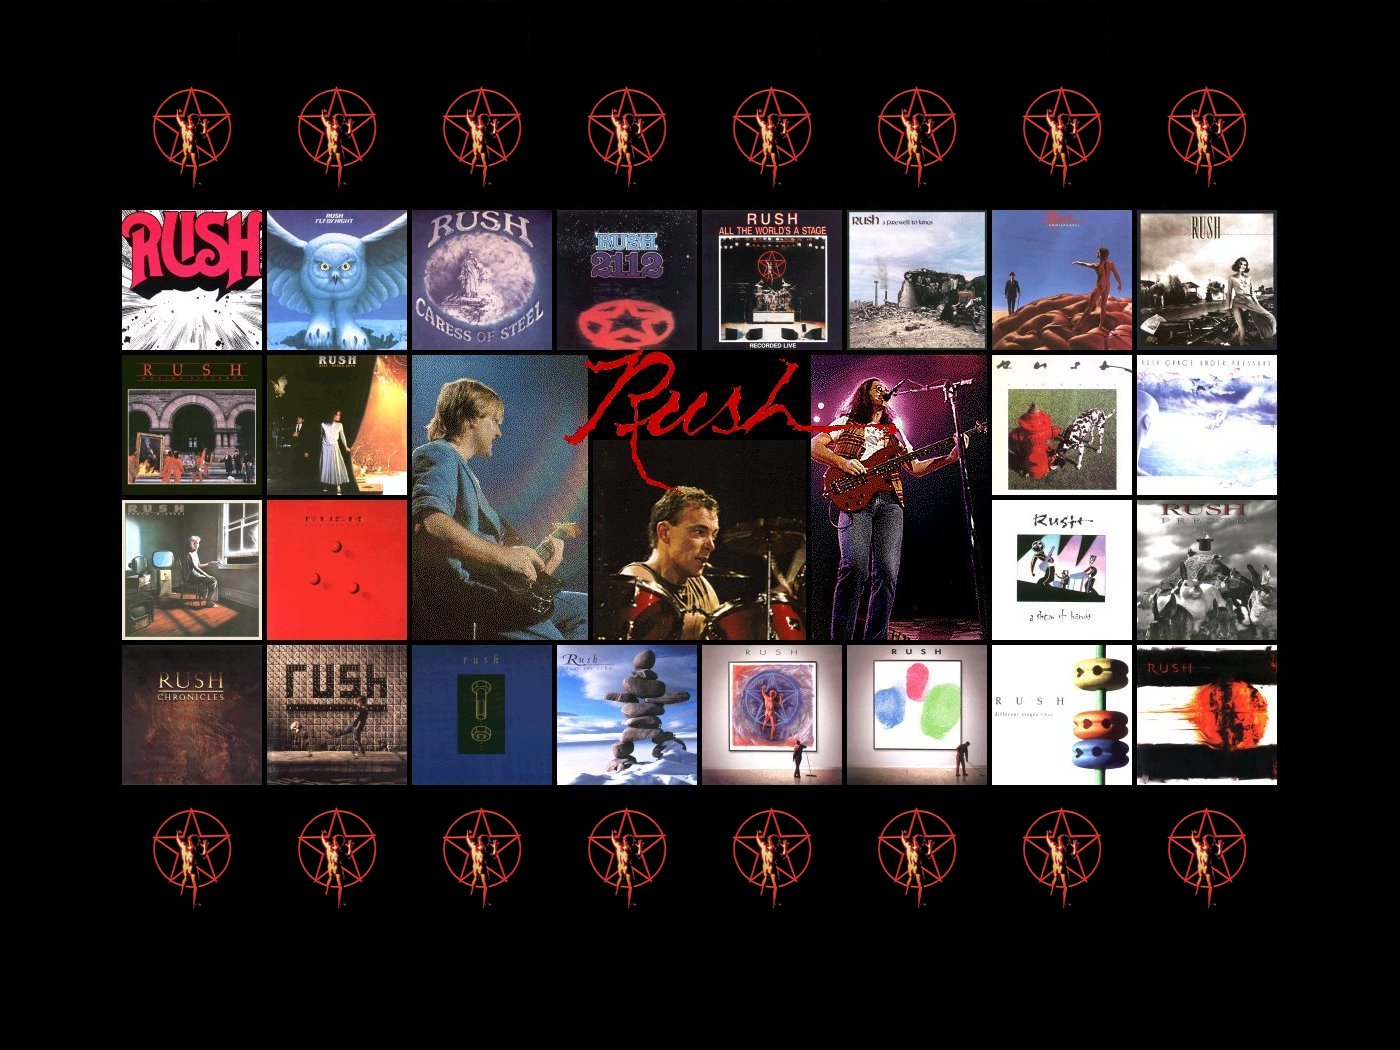 Rush The Band 1920x1200 Wallpapers 1400x1050